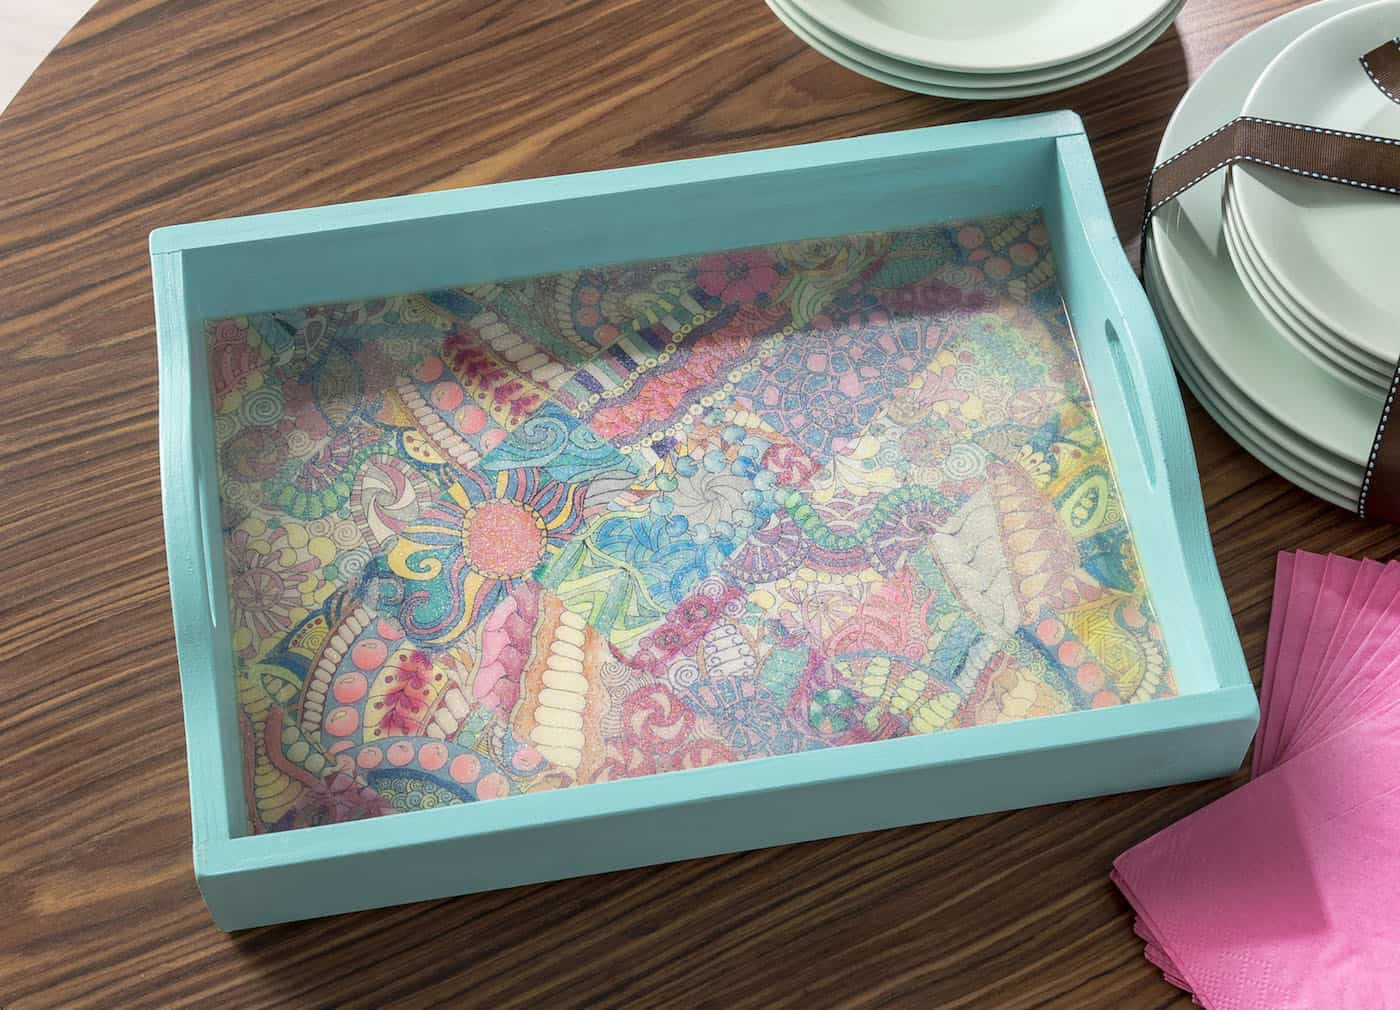 Great coloring pages for adults : Decorate a tray with adult coloring pages mod podge rocks